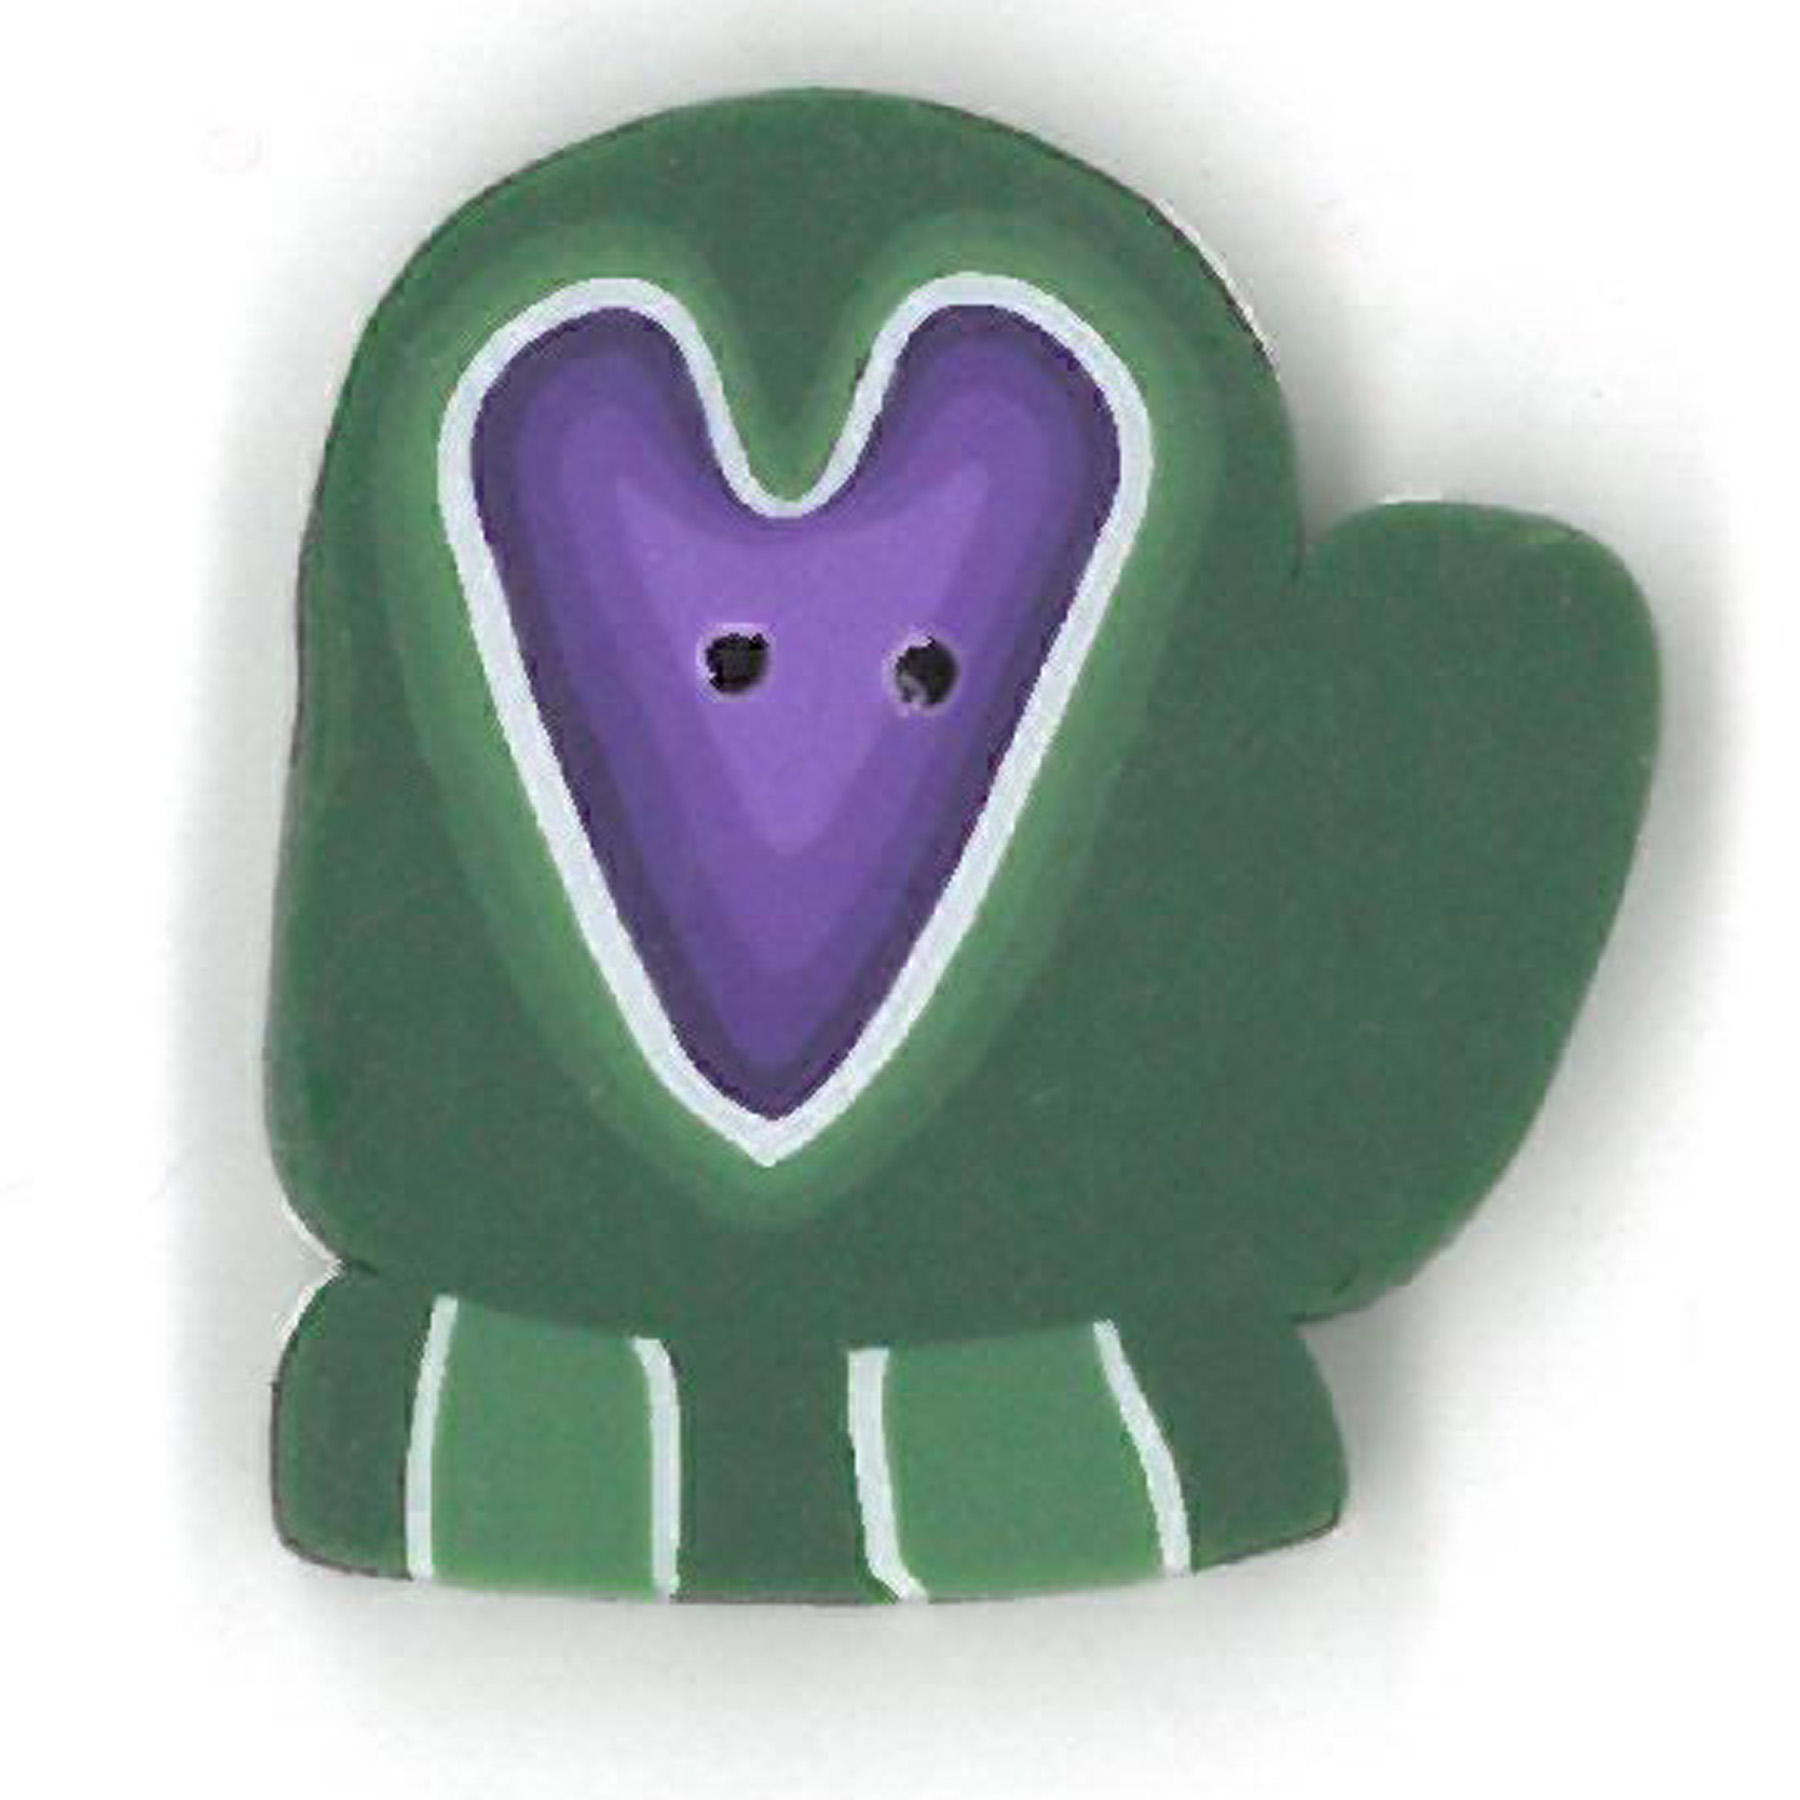 Green Mitten With Heart - Large